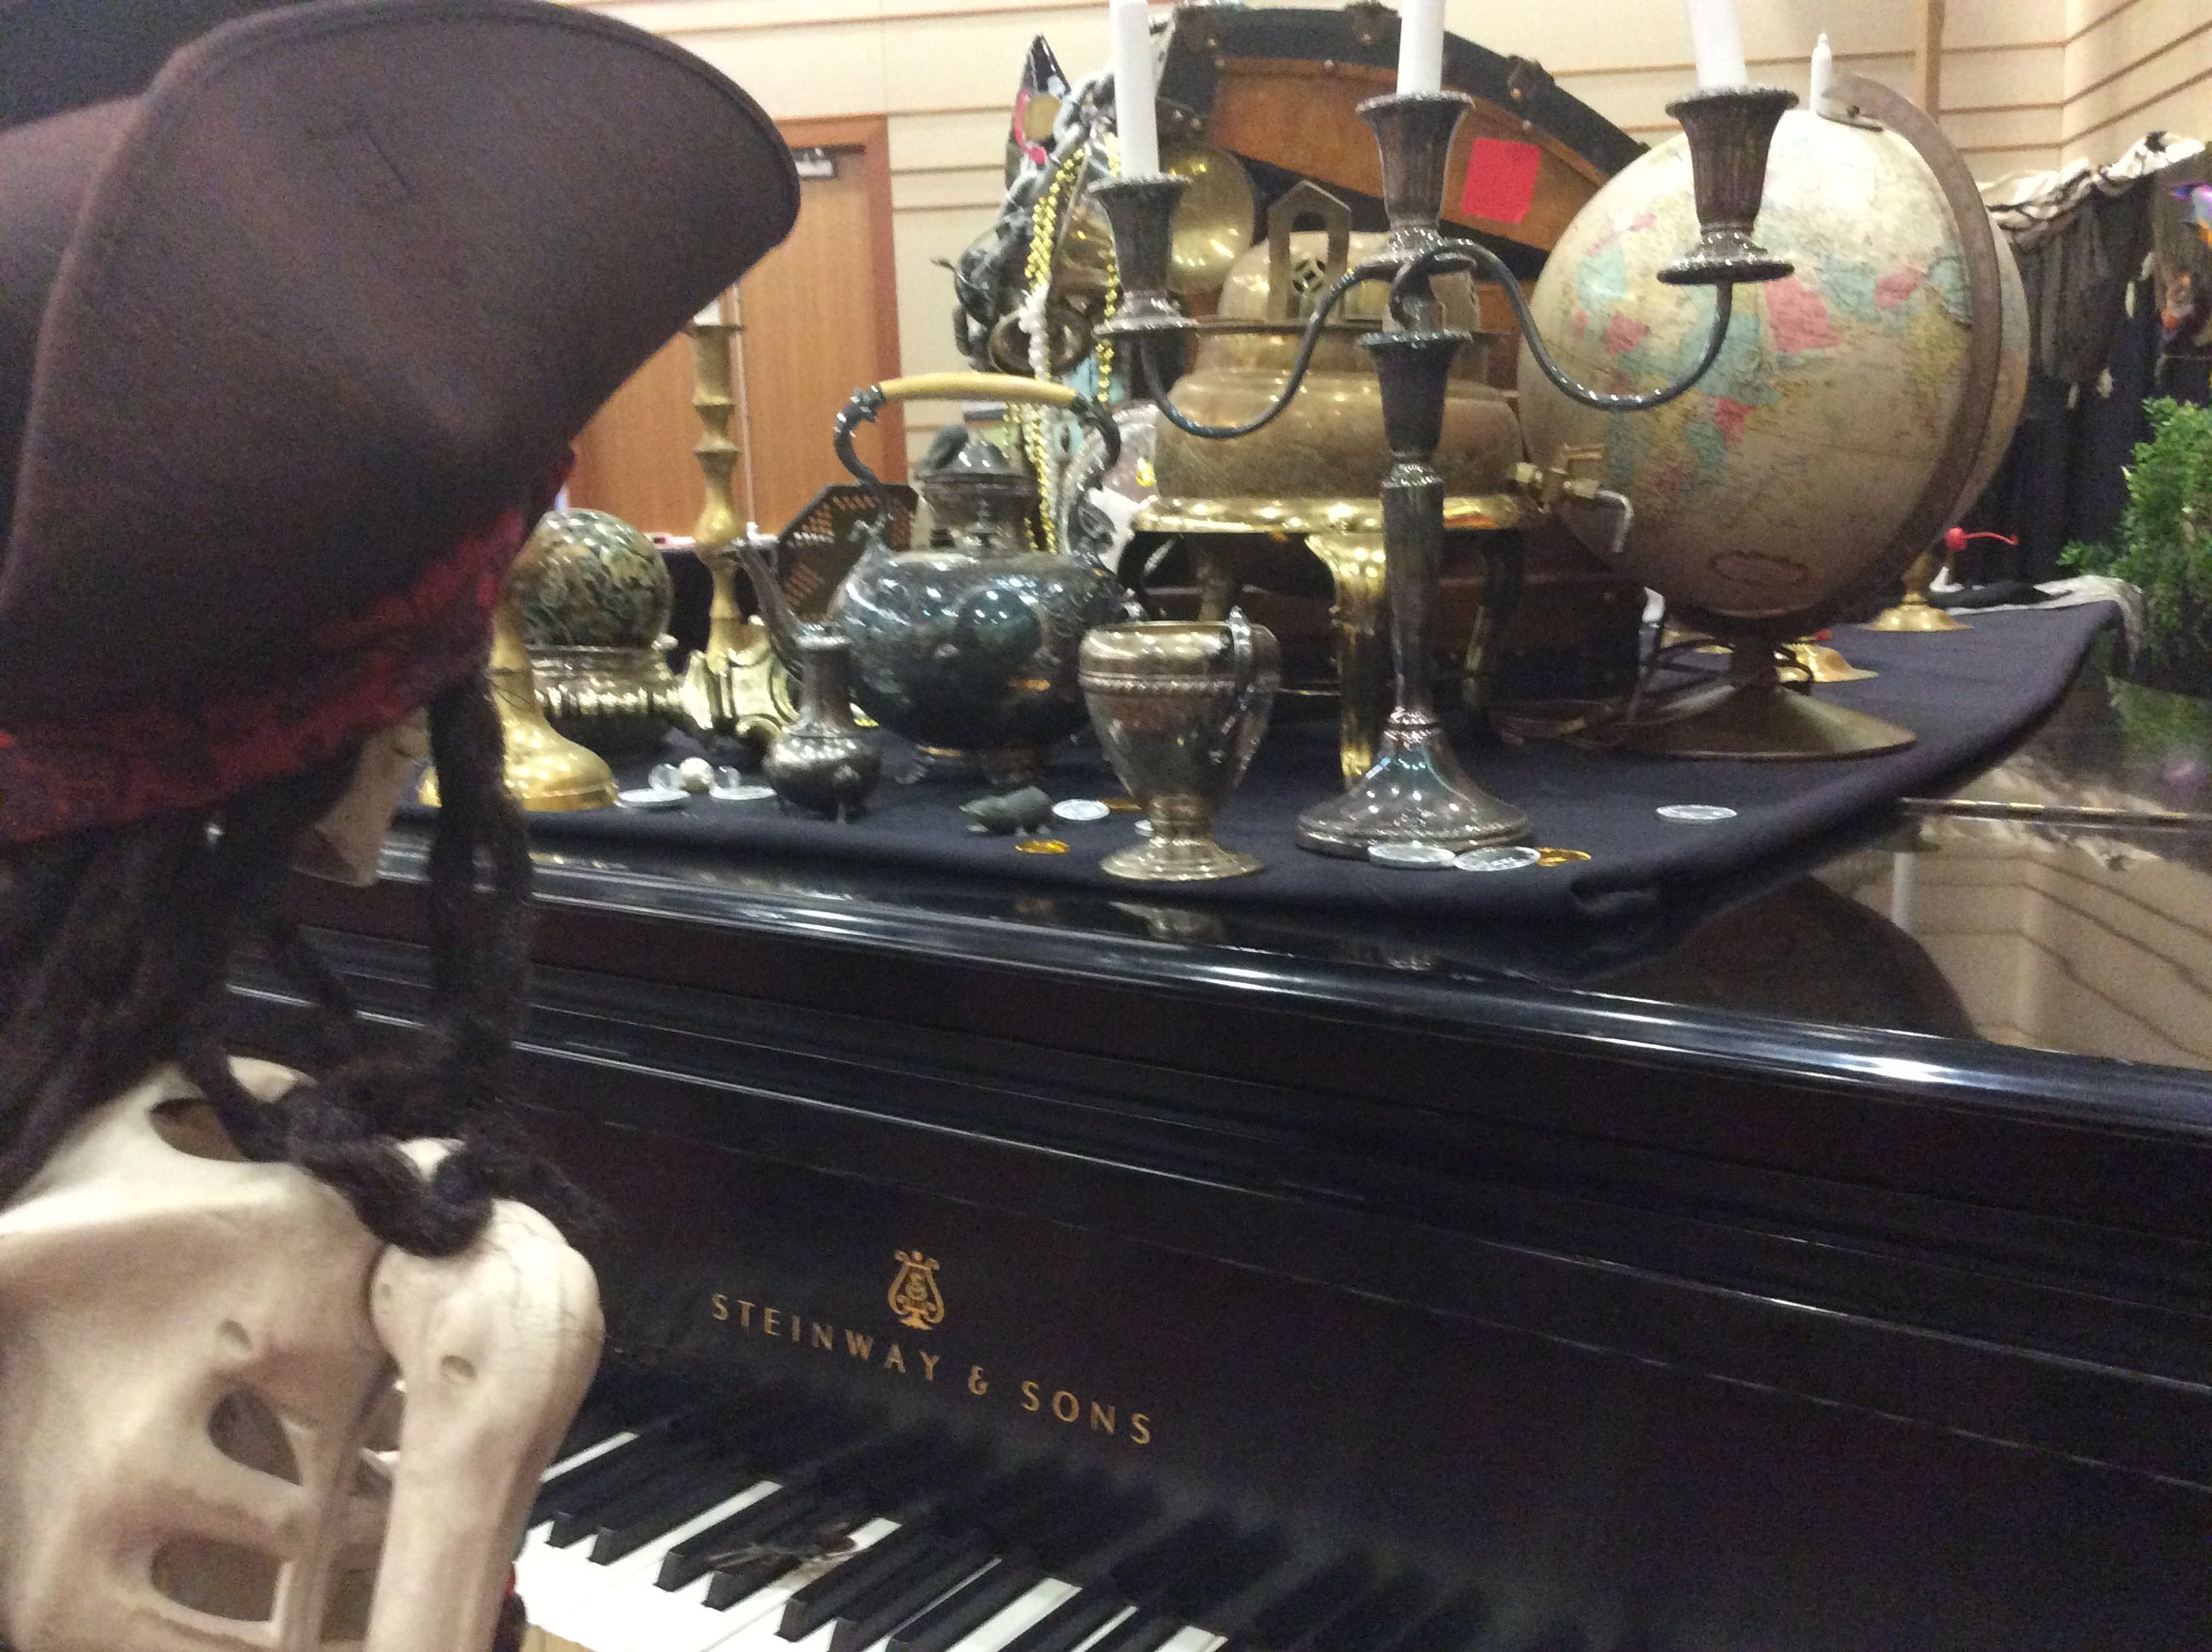 The Pirate's Booty is from the theater departments prop room!